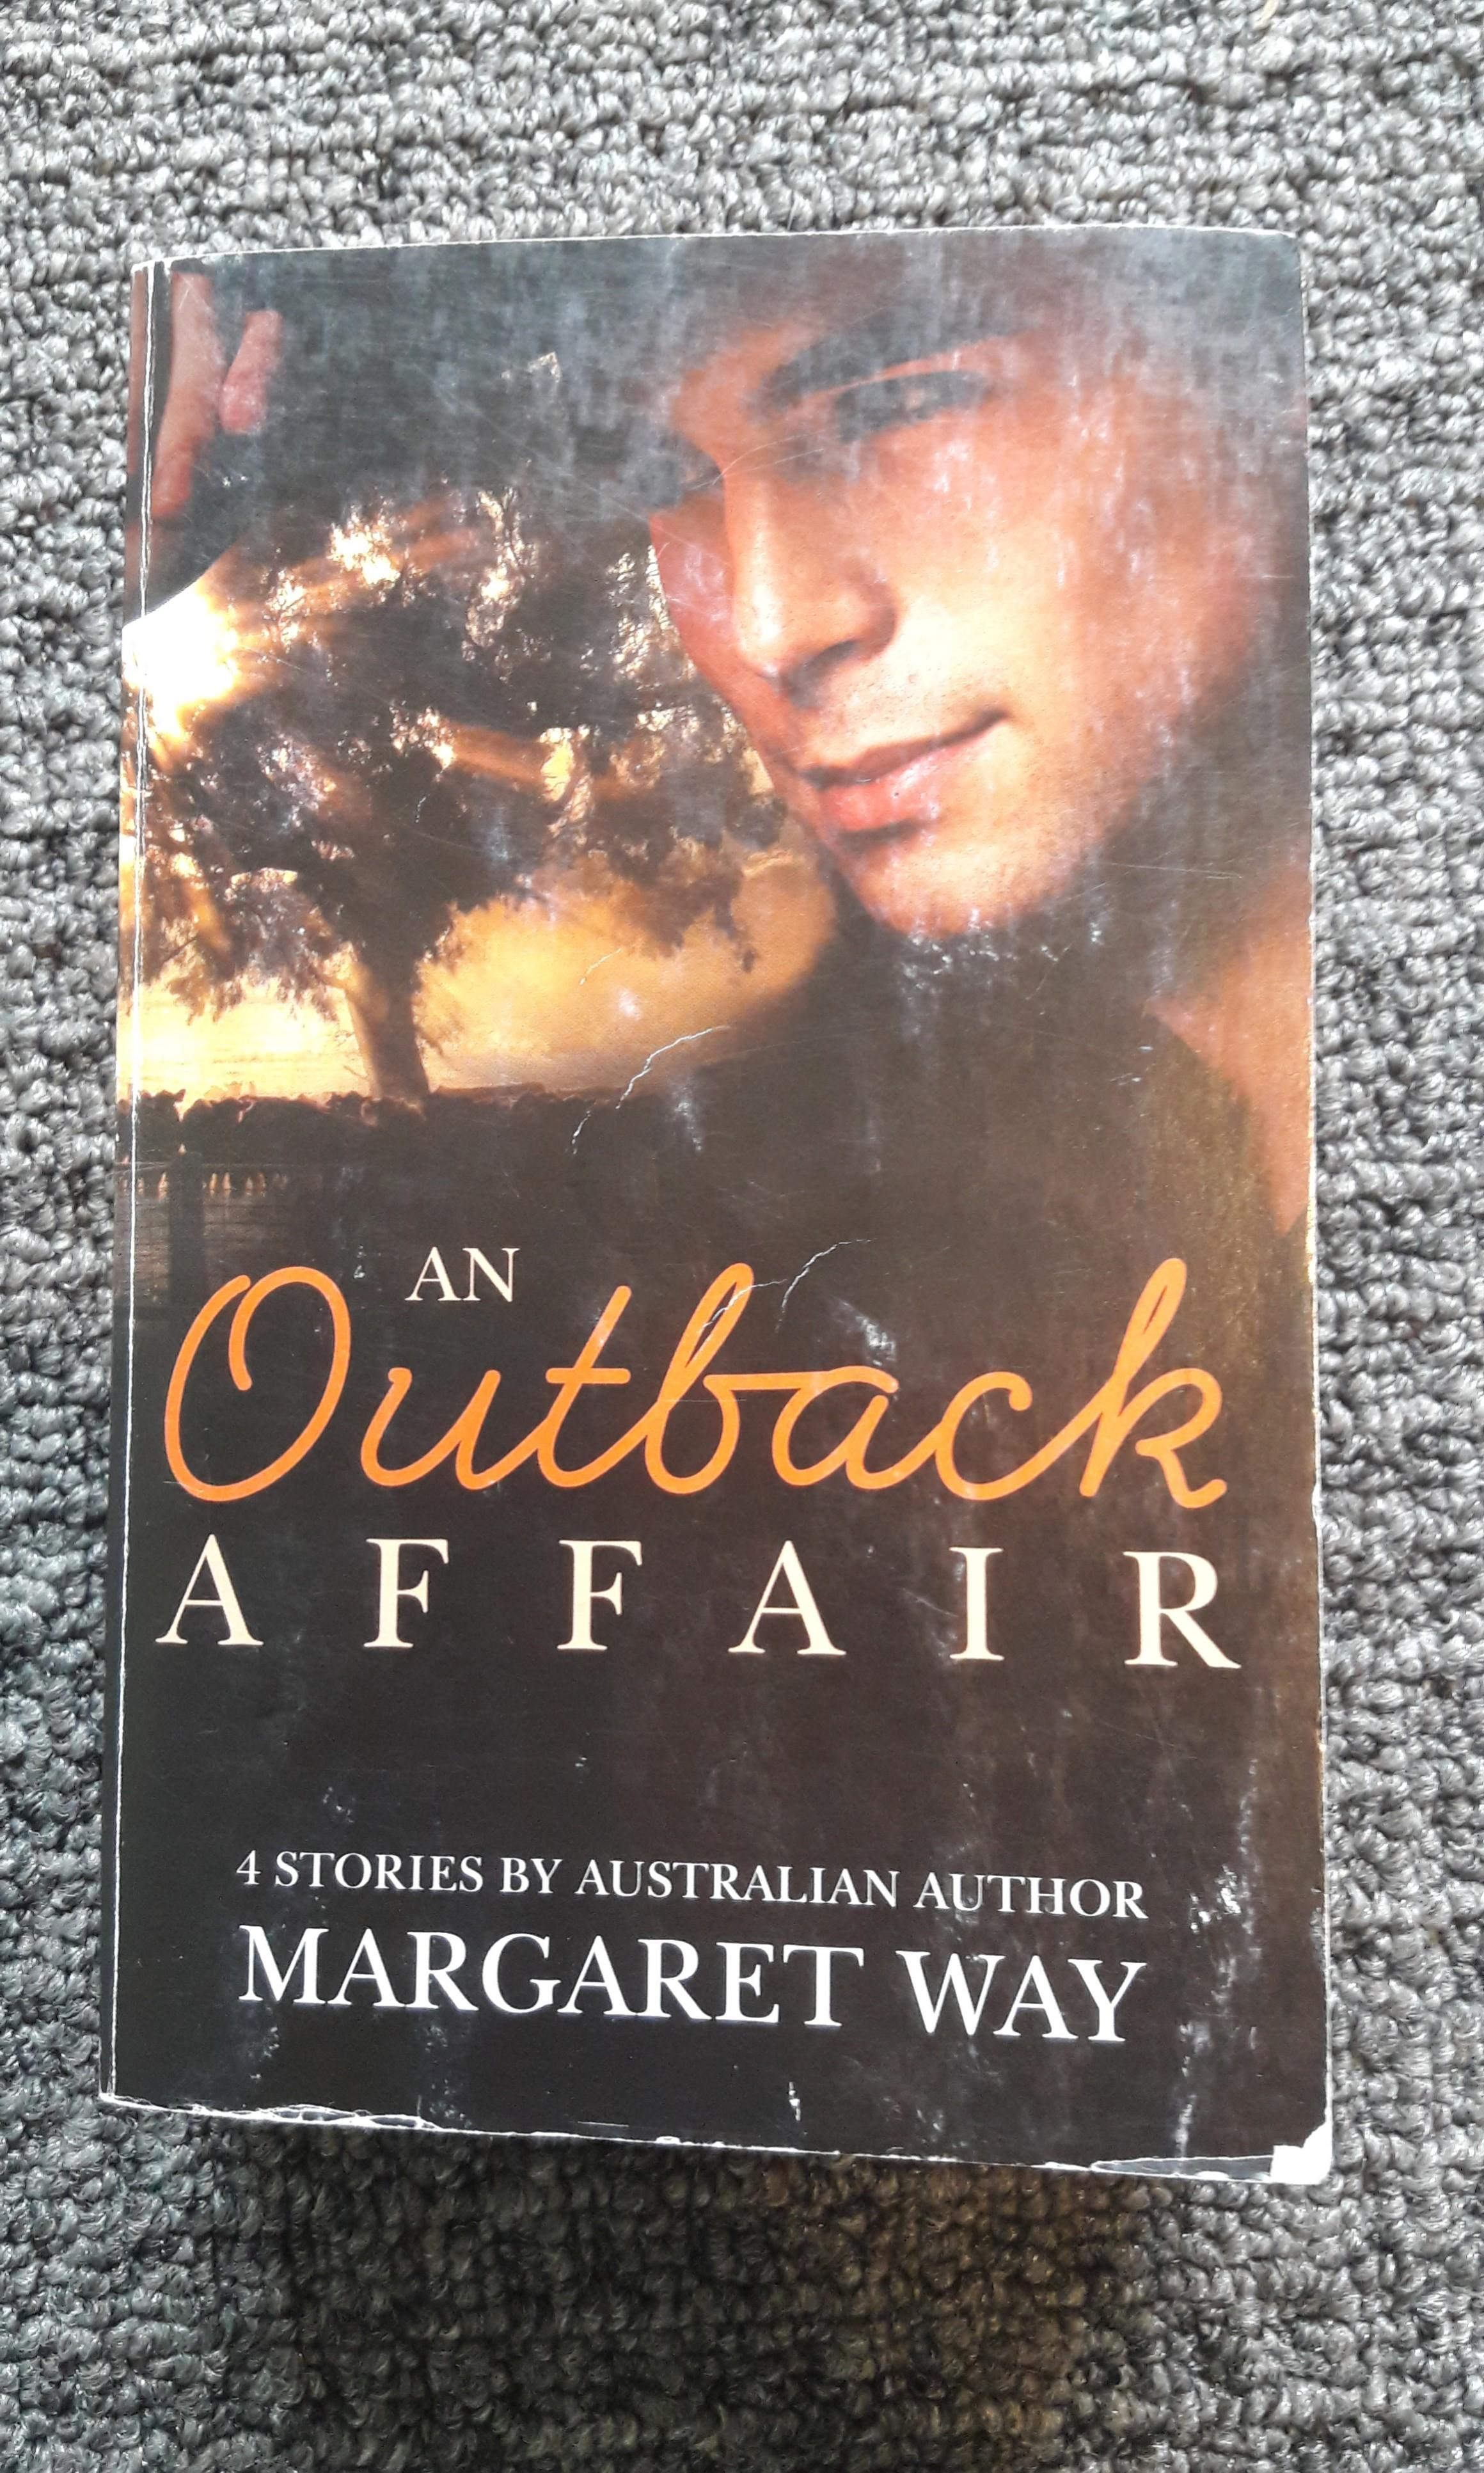 An Outback Affair - Margaret Way